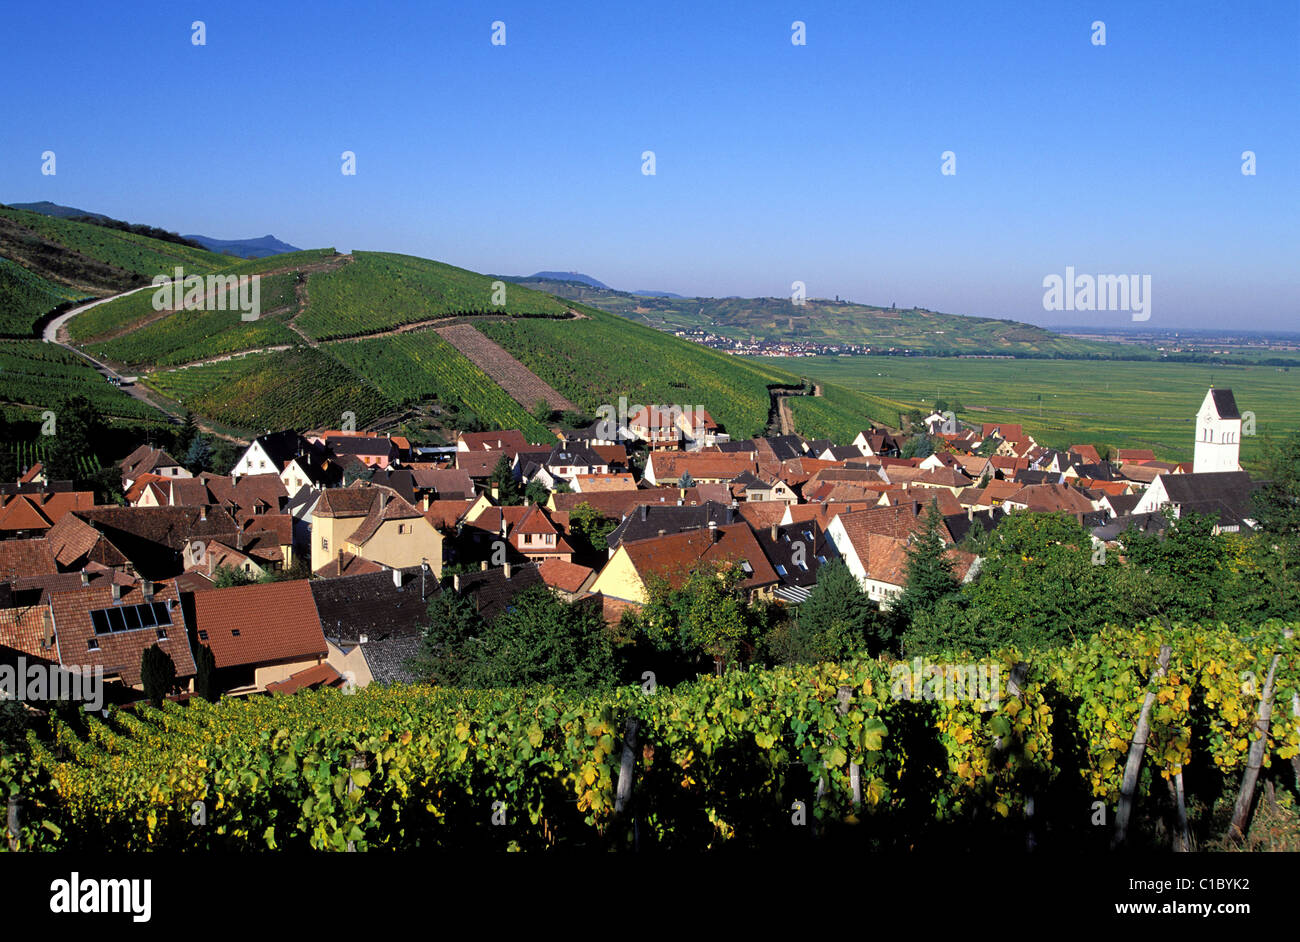 France, Haut Rhin, village of Kazenthal in the midst if the vineyards, on the Alsace Wine Route Stock Photo